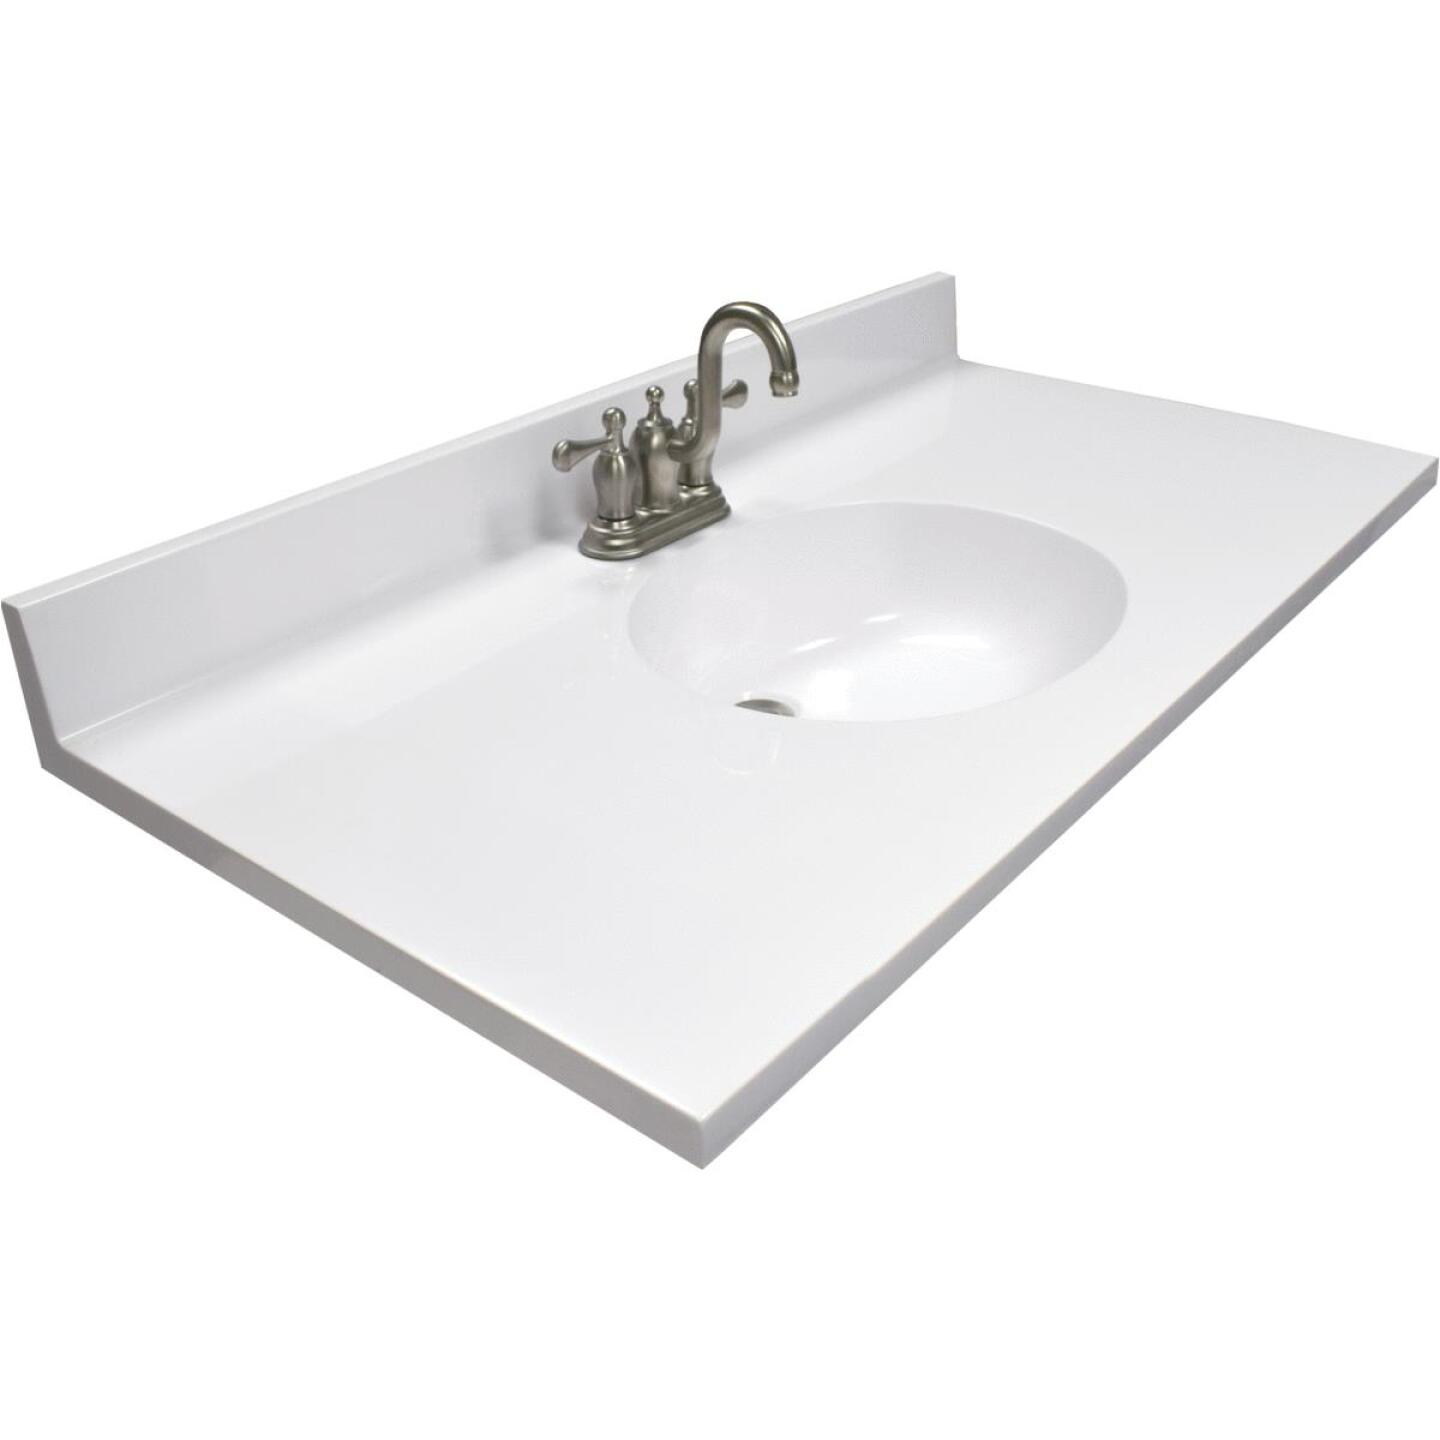 Modular Vanity Tops 37 In. W x 22 In. D Solid White Cultured Marble Vanity Top with Oval Bowl Image 1